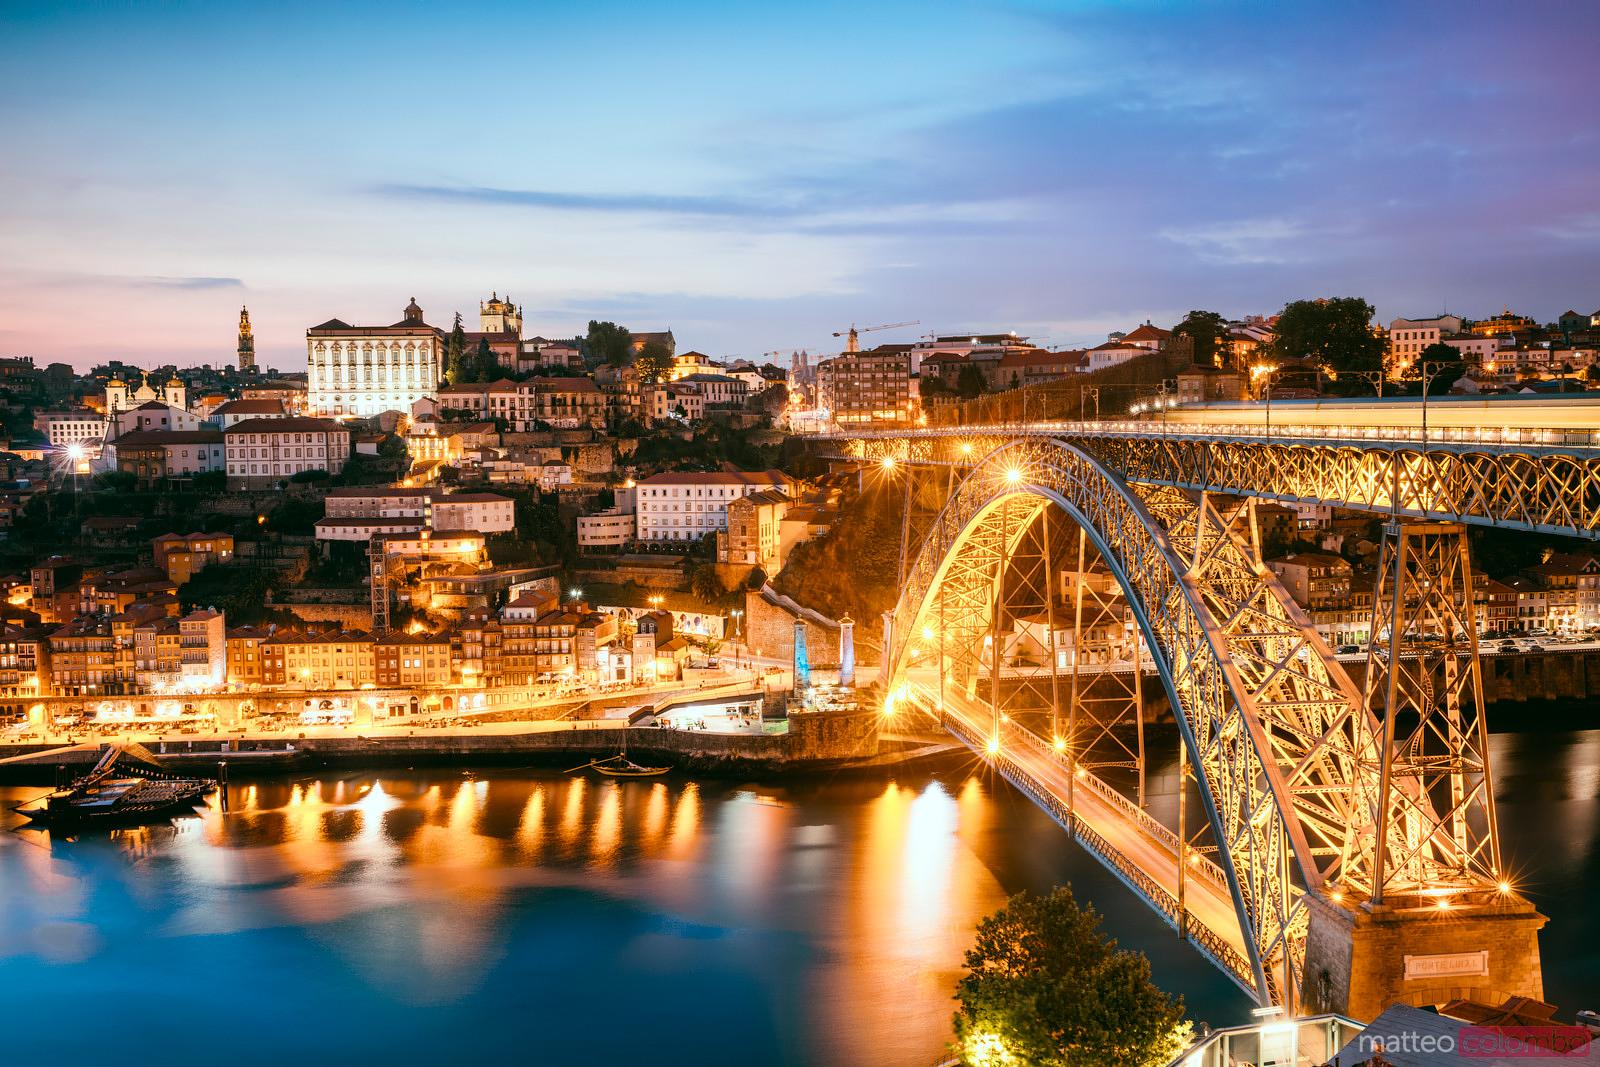 Luis I bridge illuminated at night, Porto, Portugal